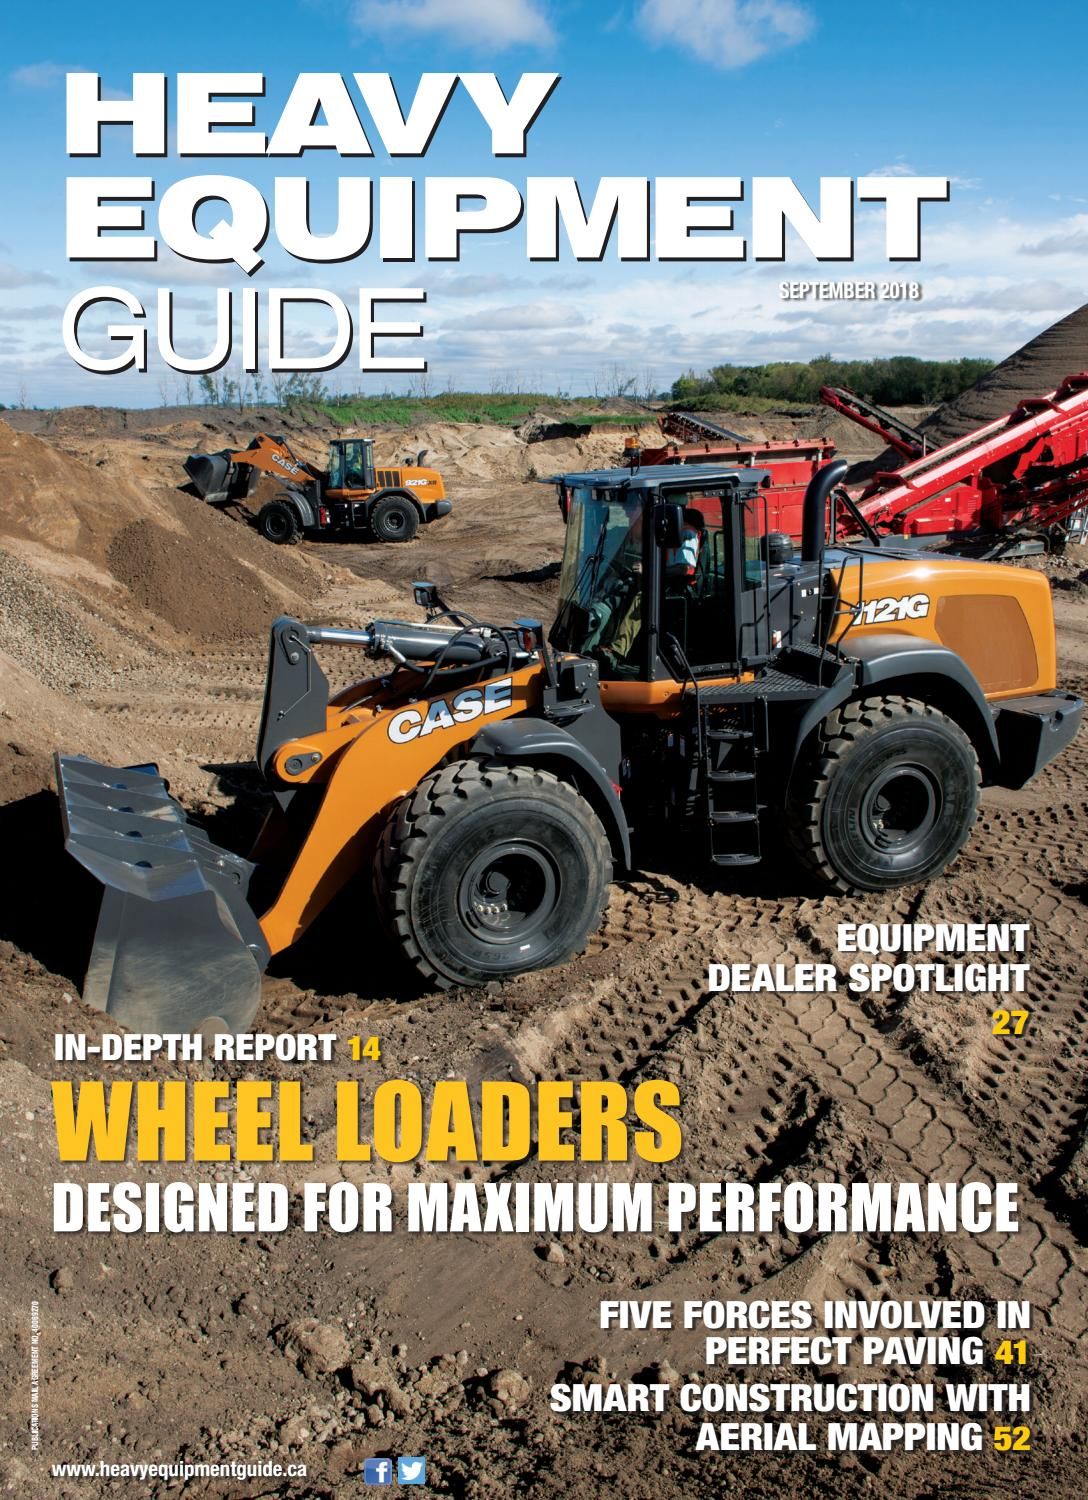 Heavy Equipment Guide September 2018 Volume 33 Number 8 By Baum Alliance And Genie Antenna Rotator Rotor Control Boxes Publications Ltd Issuu